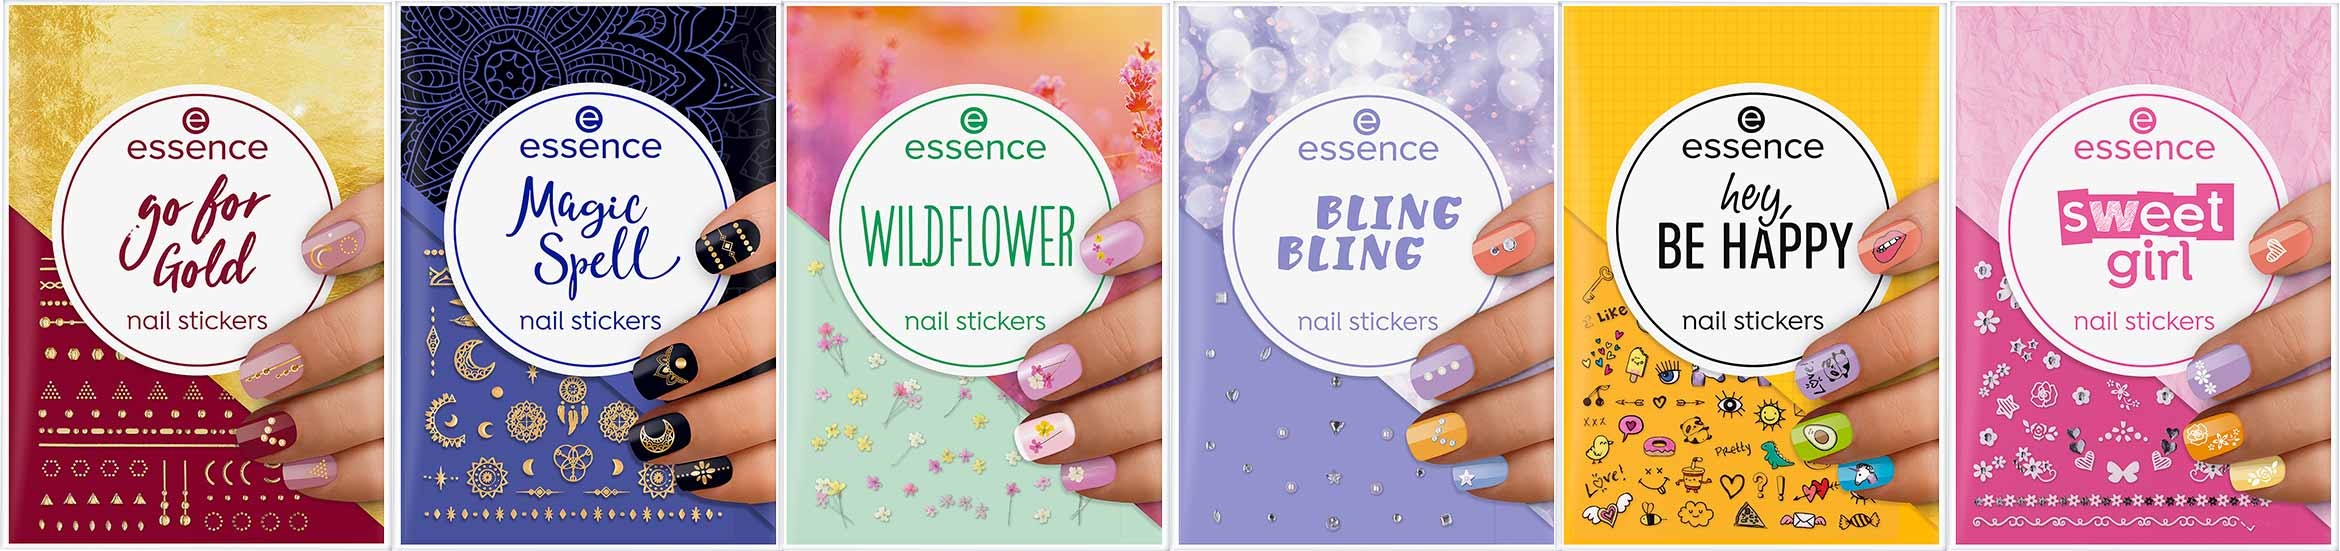 essence-nail-stickers